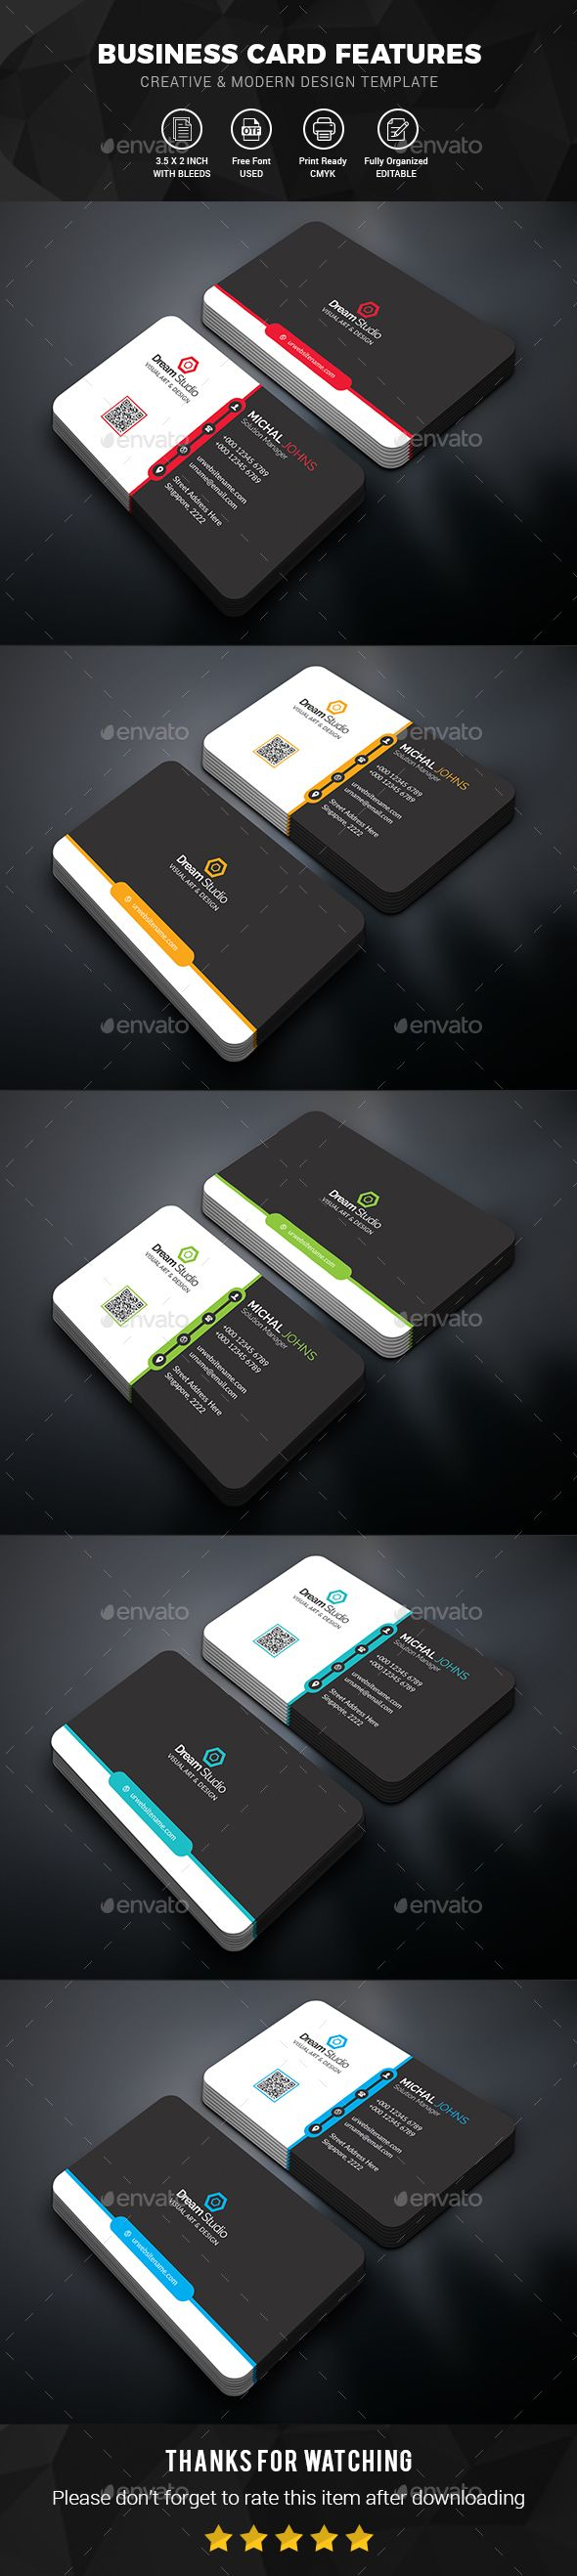 The 25 best business card print ideas on pinterest business the 25 best business card print ideas on pinterest business card design business cards and creative business cards reheart Image collections